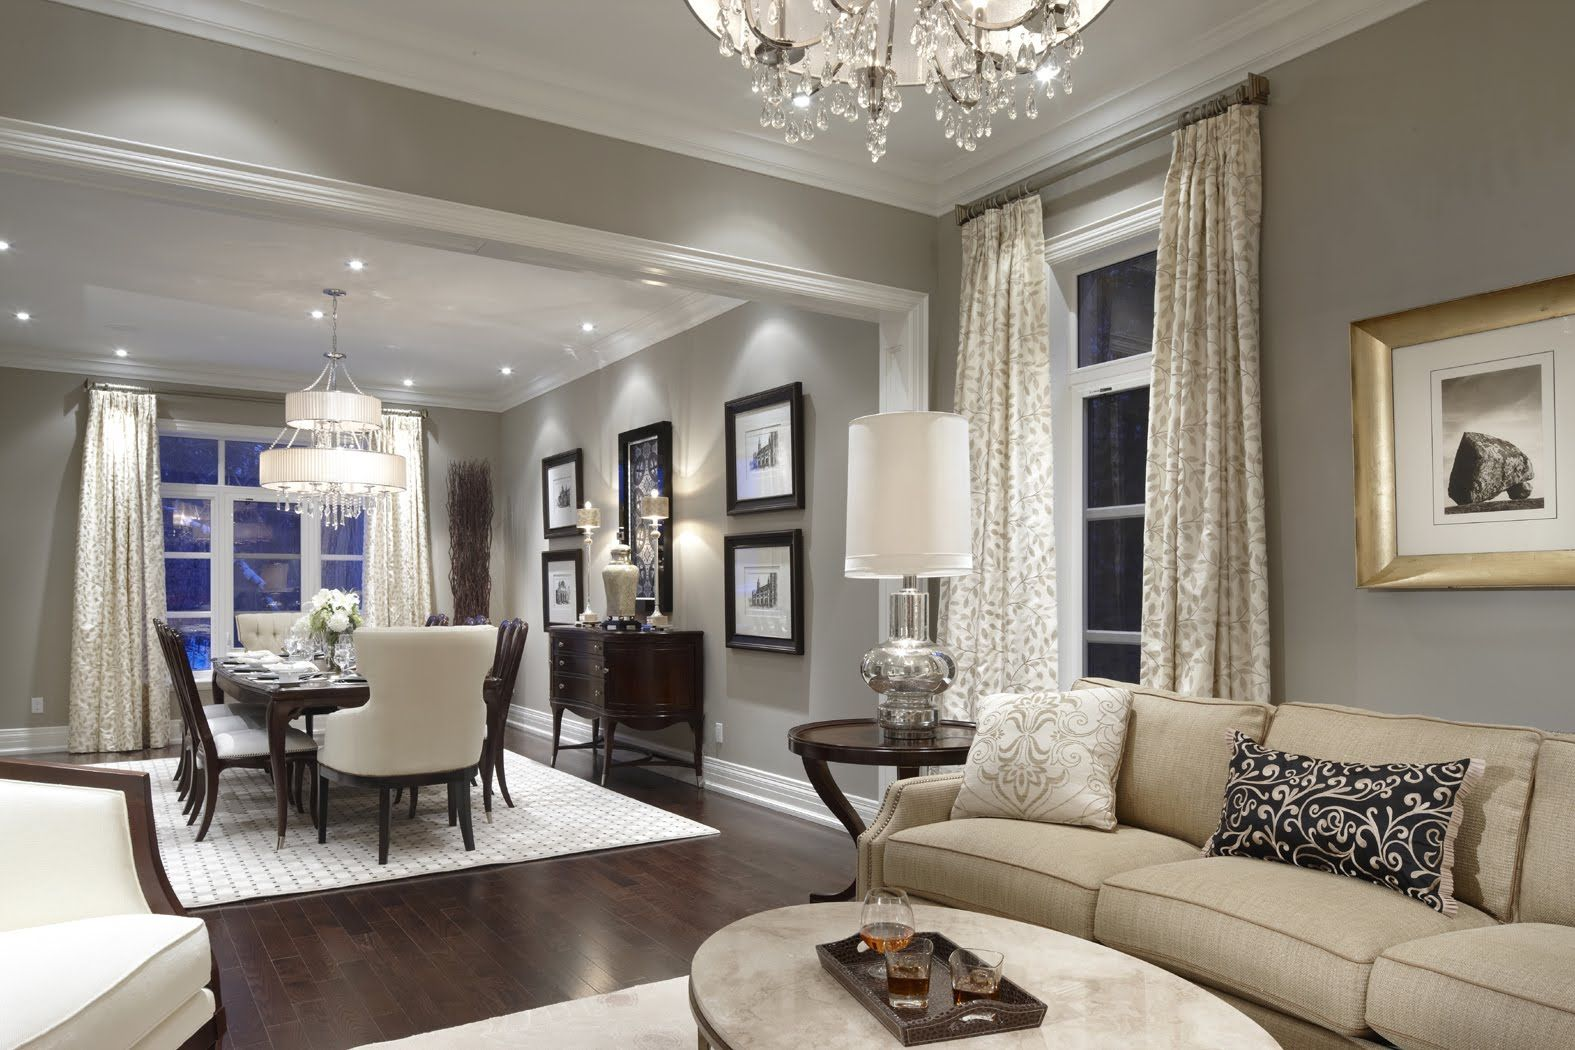 Benjamin Moore Colors For Your Living Room Decor | Beige ...